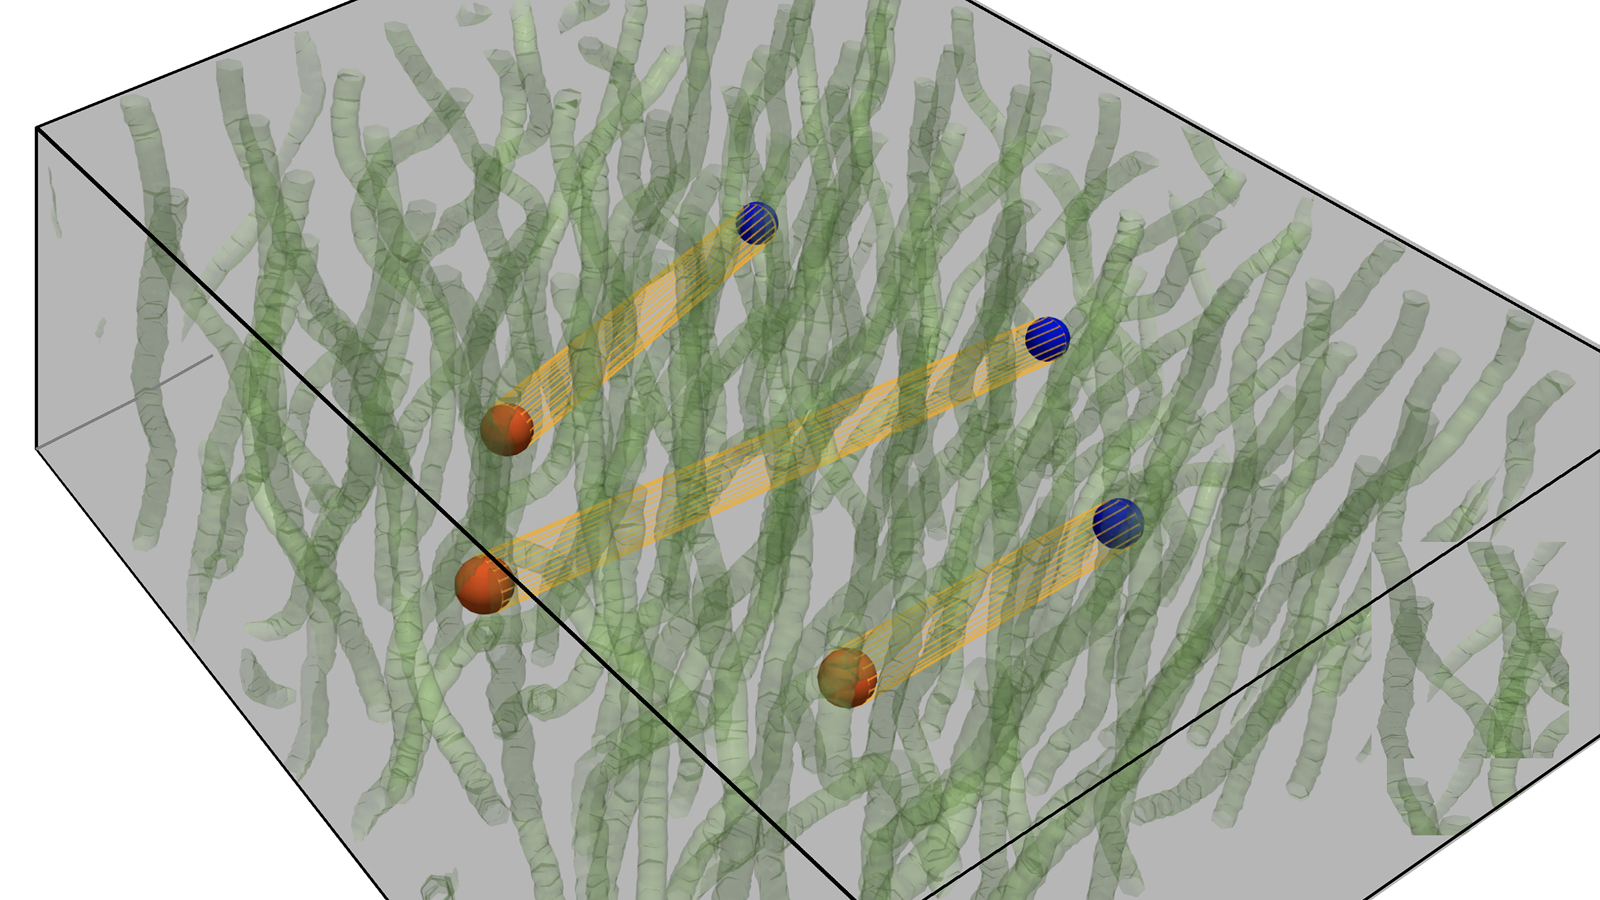 This image shows a 3D superinsulator, in which vortex condensate (green lines) squeezes the electric field lines connecting charge-anticharge pairs (red and blue balls) into the electric strings (orange strips). These strings tightly bind these charge-anticharge pairs, completely immobilizing them, so electric current cannot be produced. (Image by Argonne National Laboratory.)